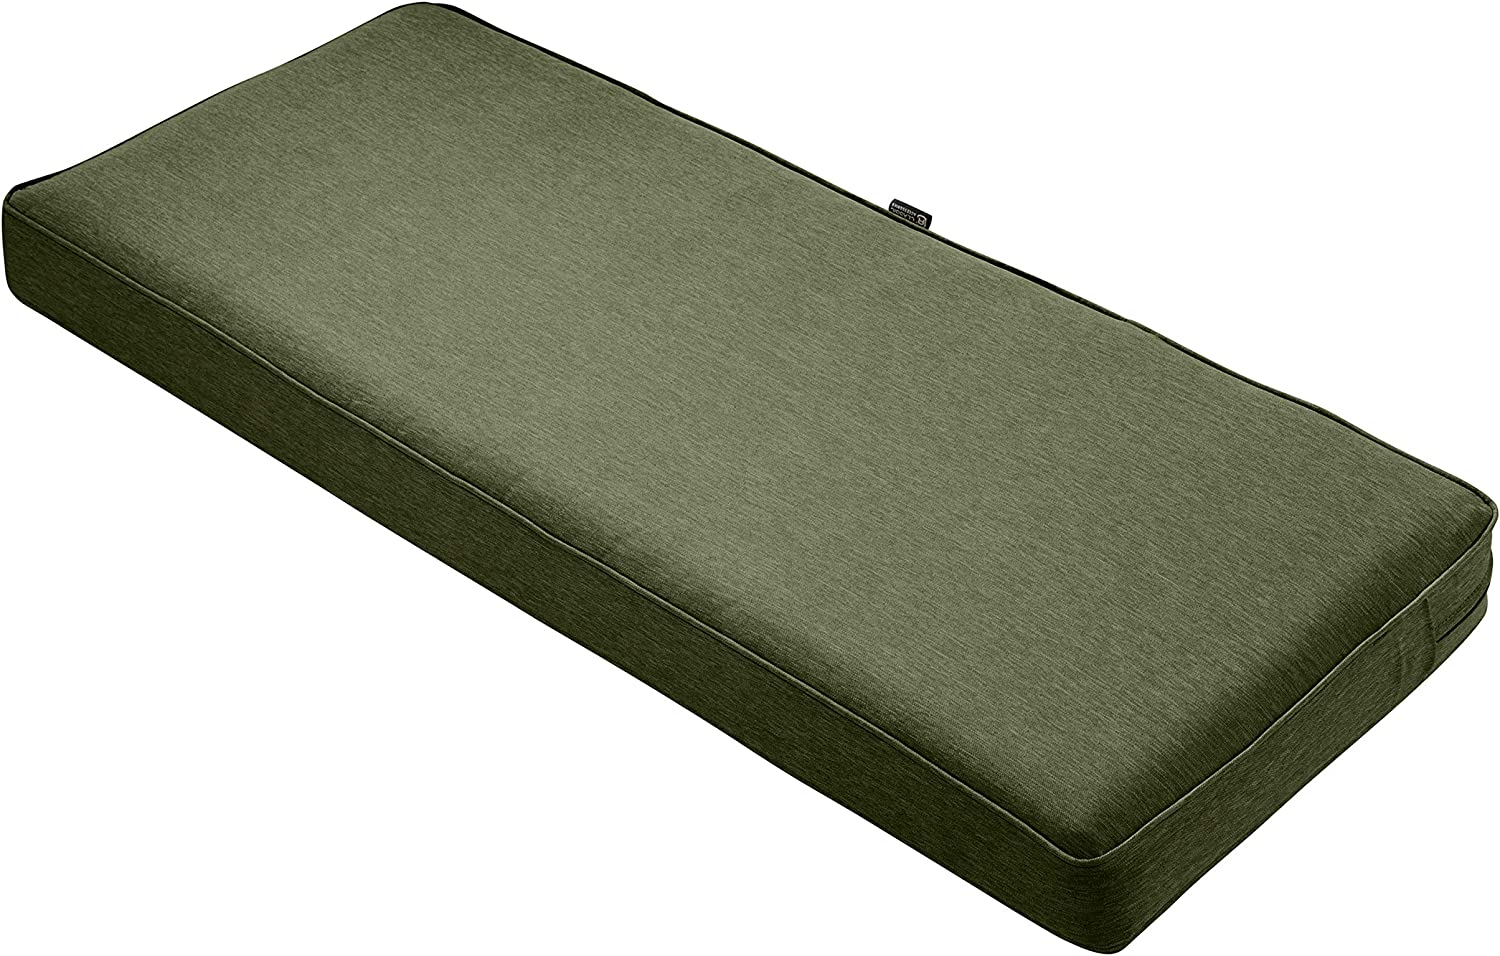 "Classic Accessories Montlake Bench Cushion Foam & Slip Cover, Heather Fern, 48x18x3"" Thick"